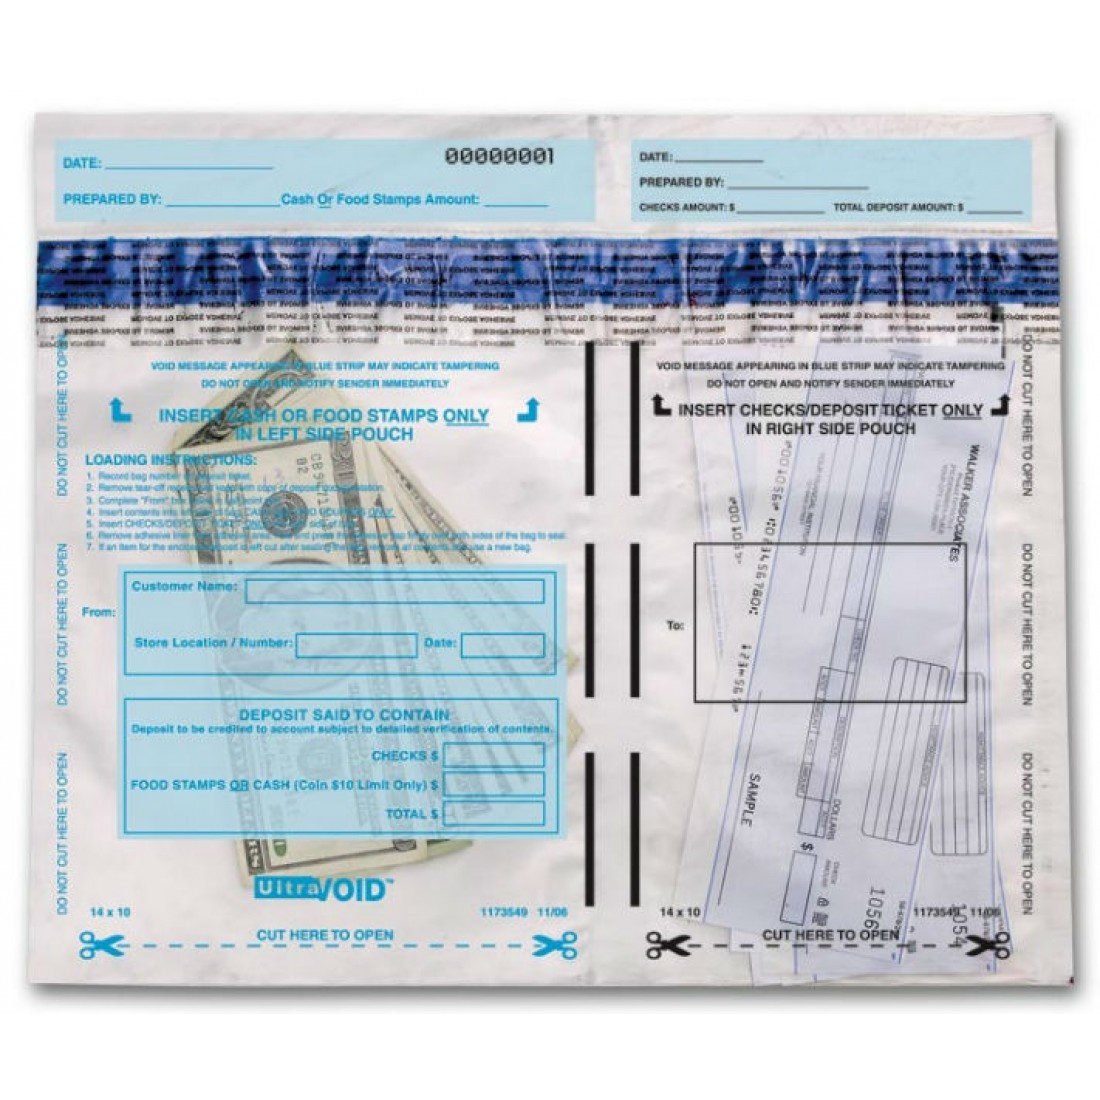 Horizontal Dual-Pocket Cash Deposit Bags (53859) - Deposit Slips  - Business Checks